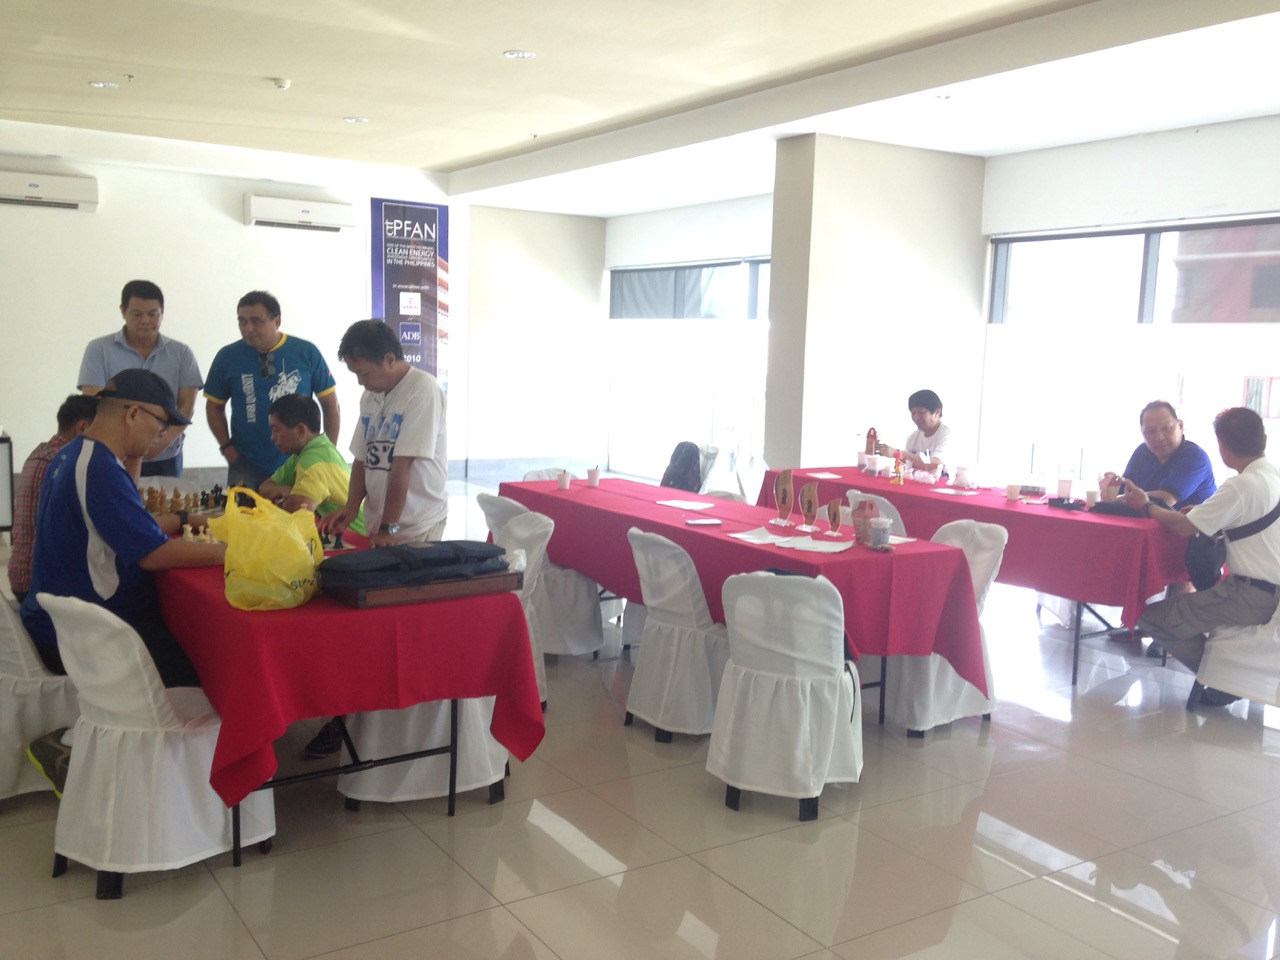 Batch '74 getting started with their chess tournament.